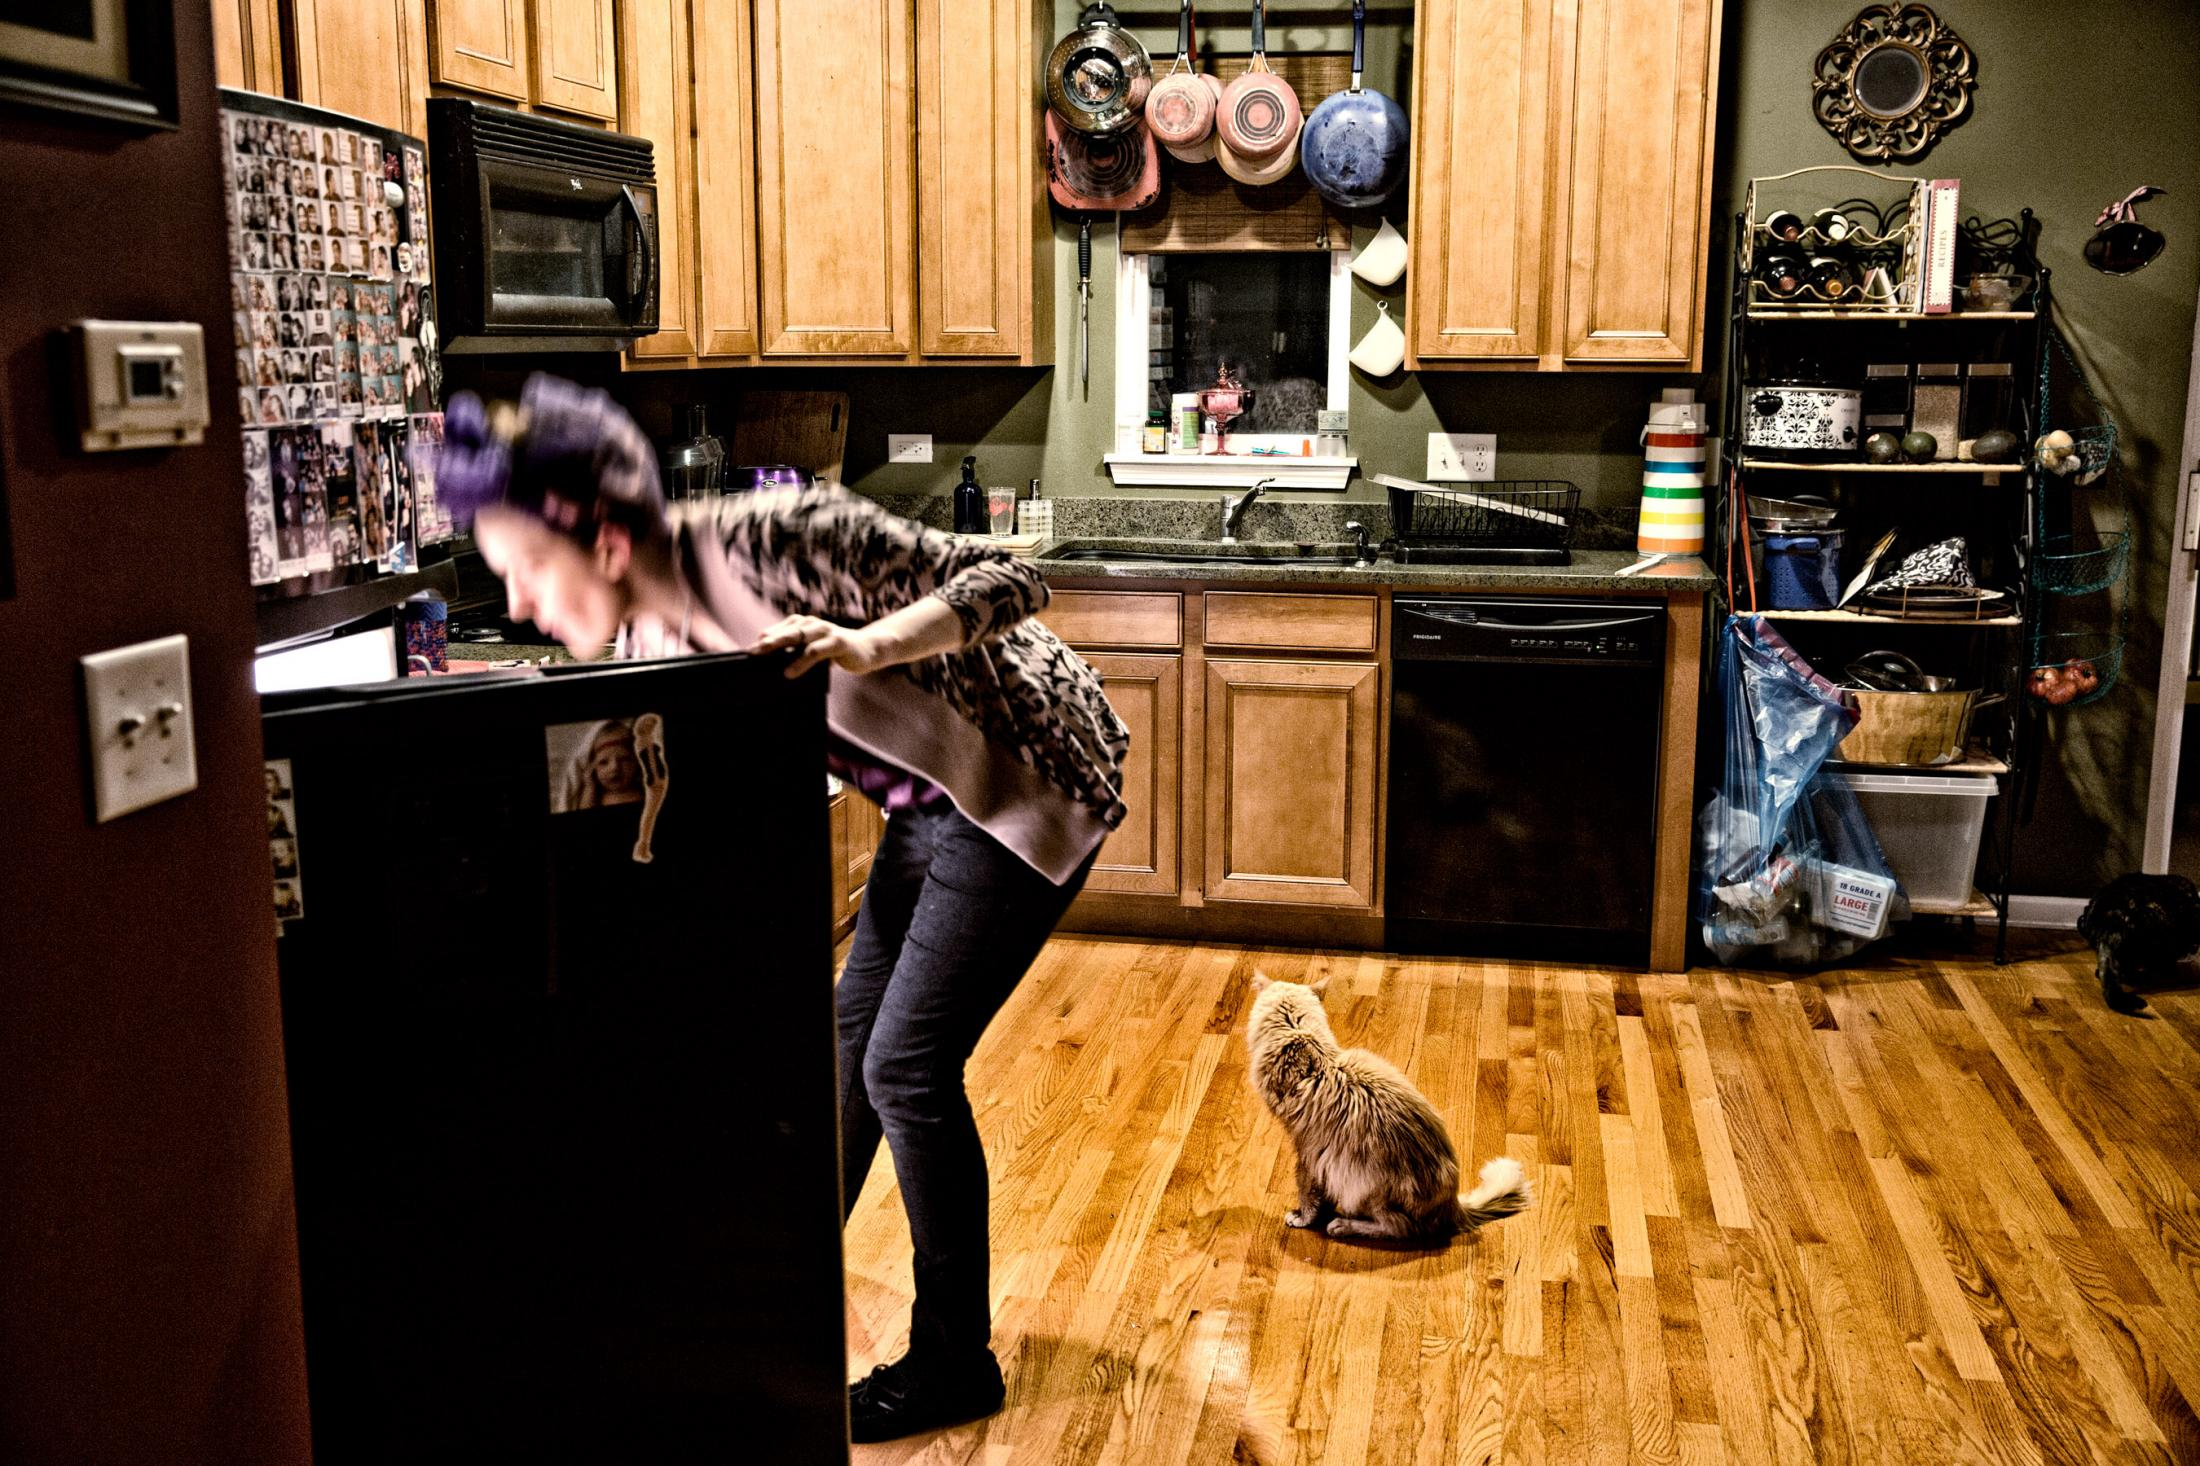 When all is said and done, during a private moment, Annie and her cat look for lunch.